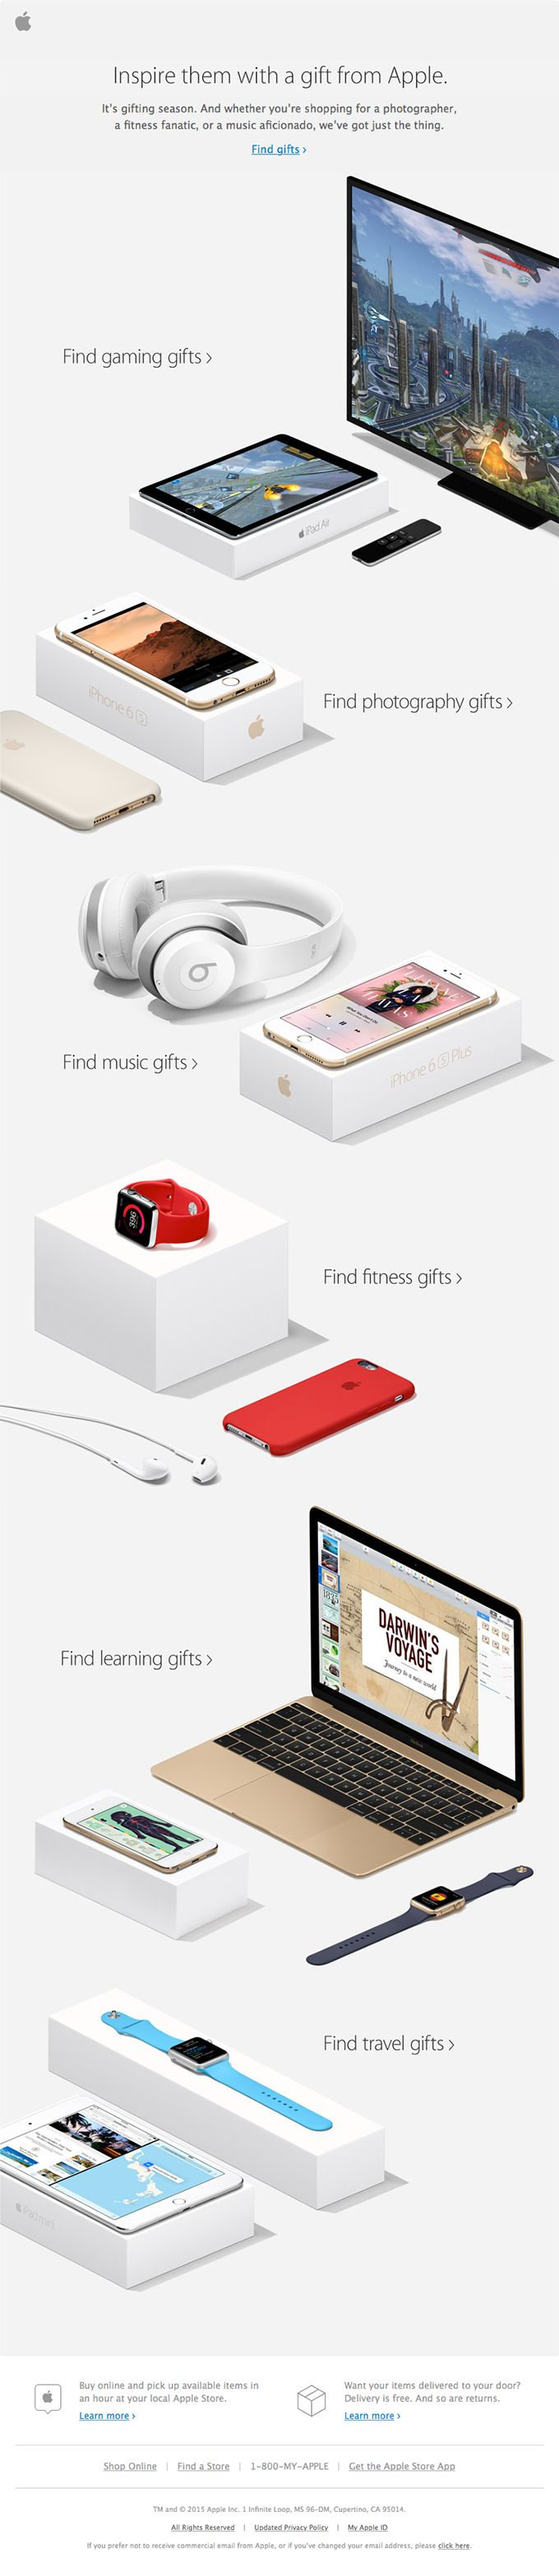 Great gifts for whatever they're into.